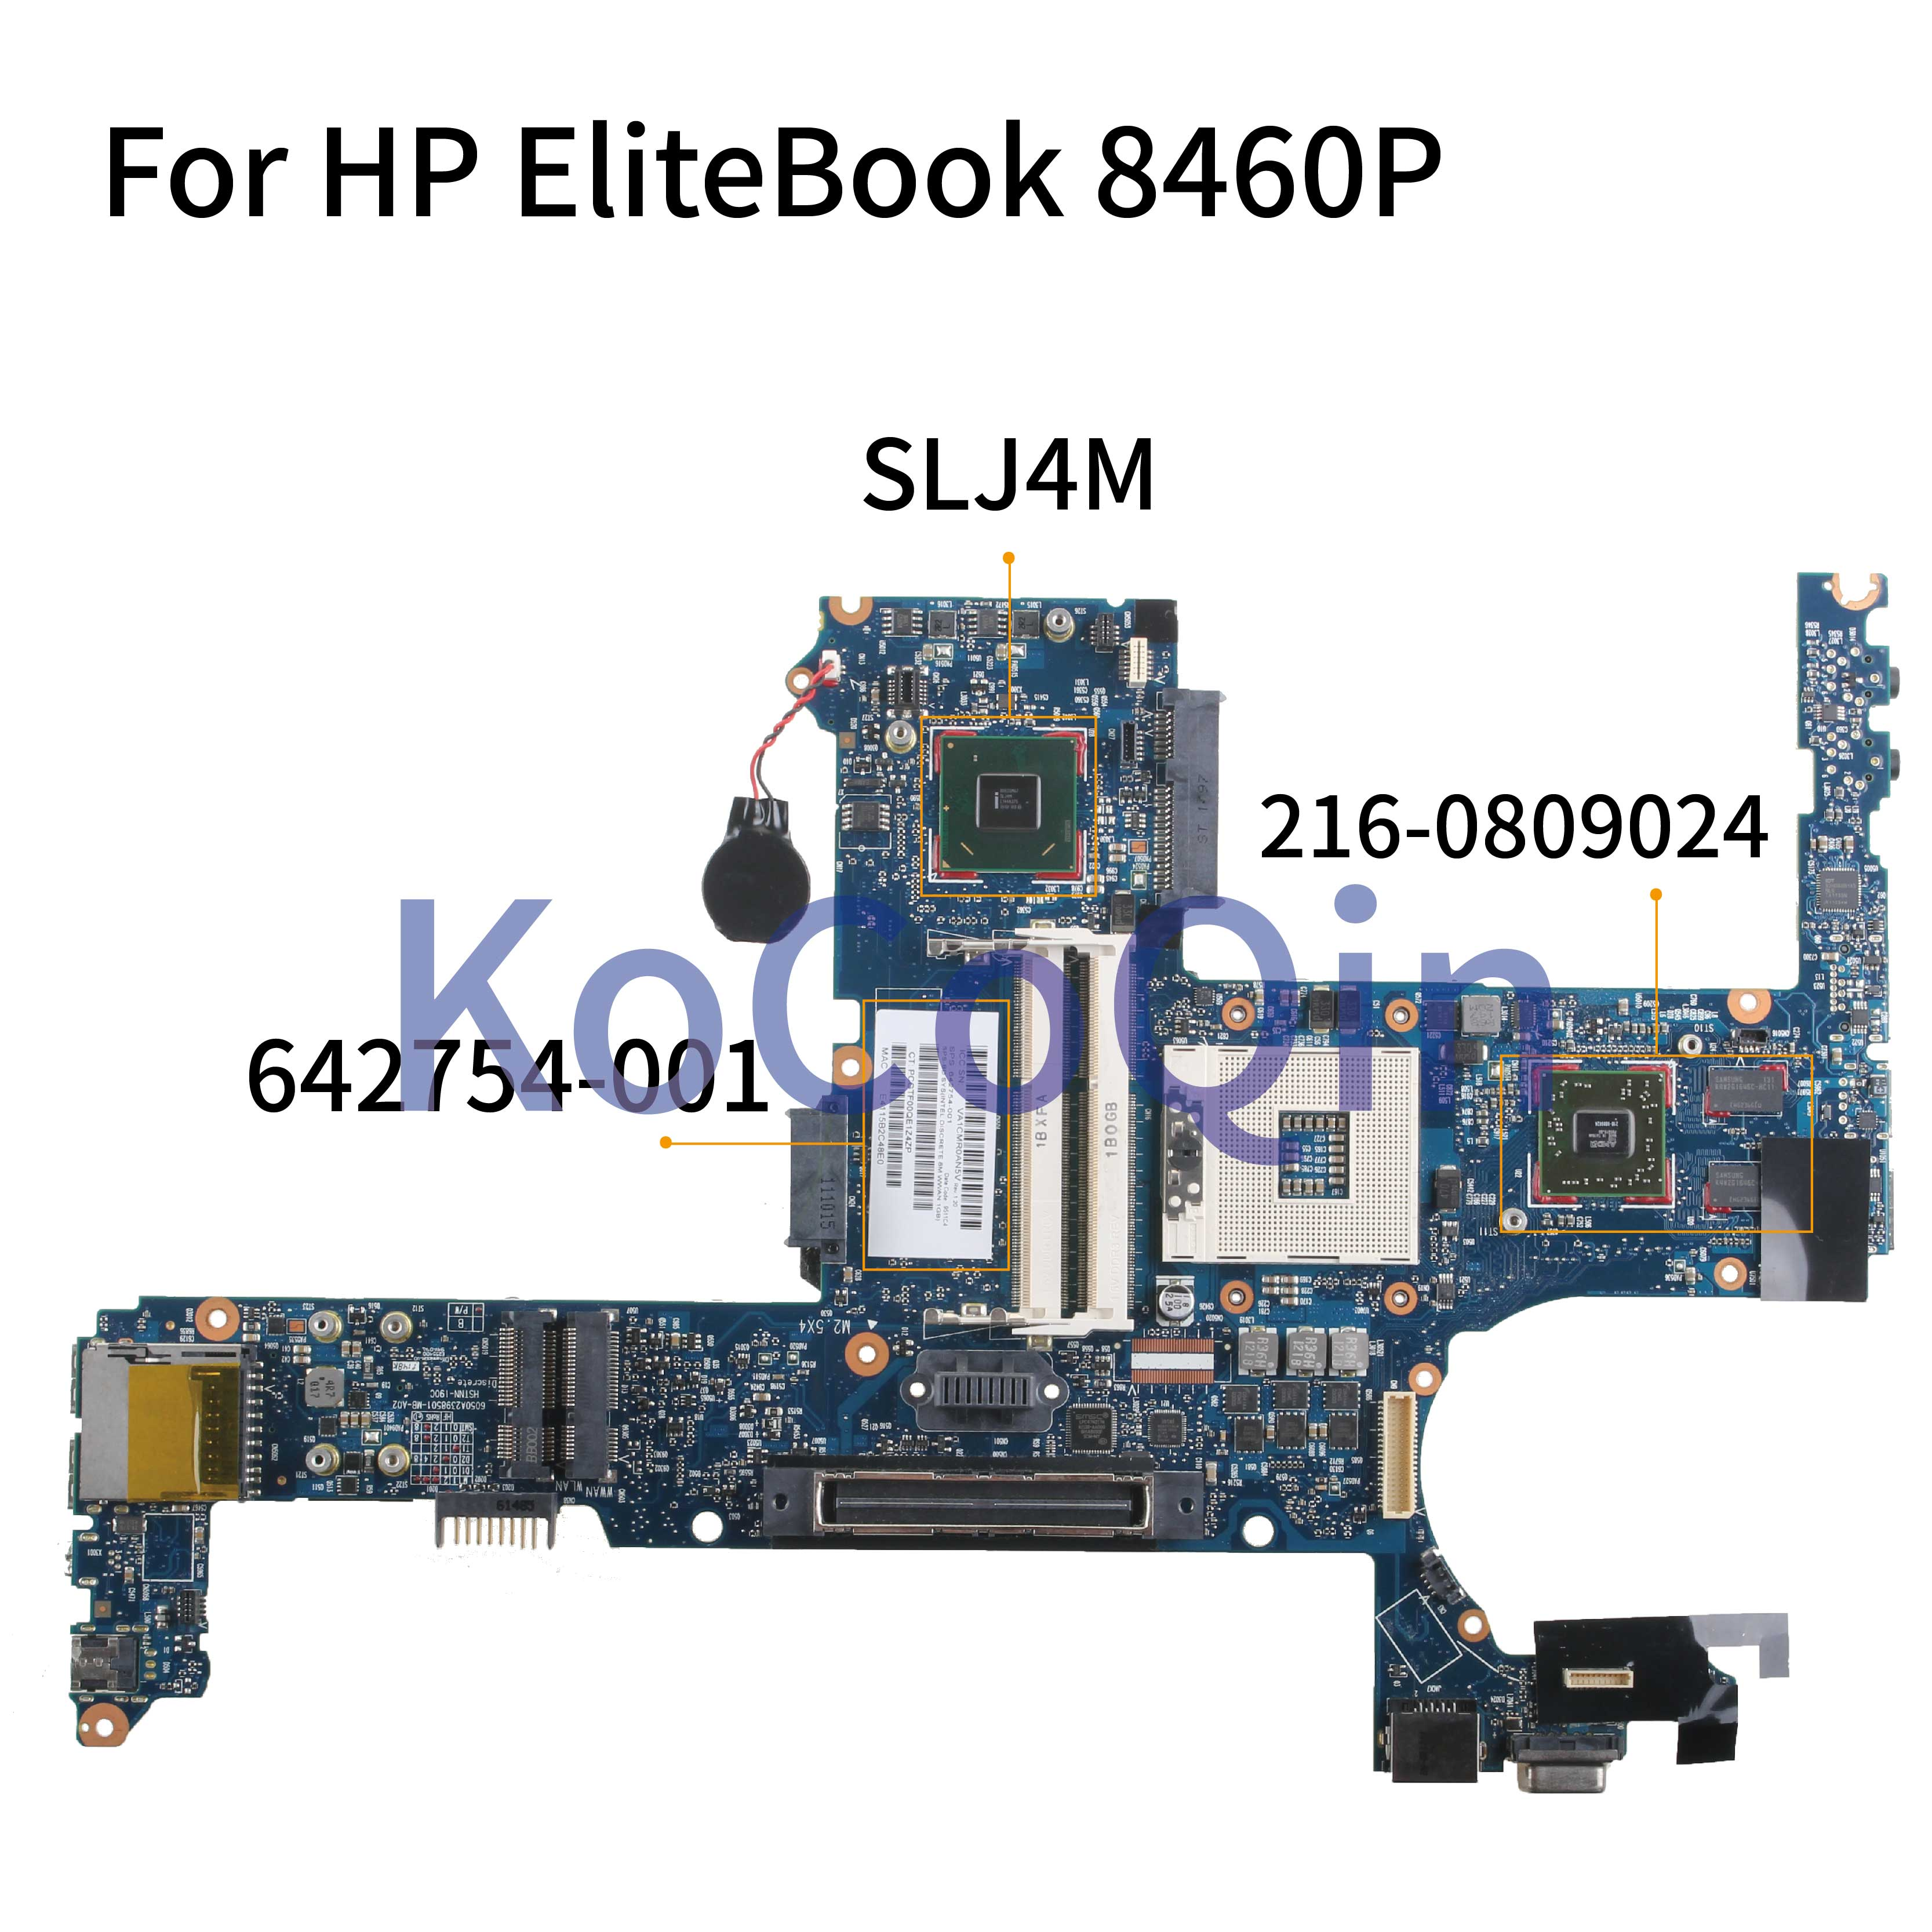 KoCoQin Laptop <font><b>motherboard</b></font> For <font><b>HP</b></font> EliteBook 6460B <font><b>8460P</b></font> Mainboard 642754-001 642754-501 6050A2398501 SLJ4M 216-0809024 image